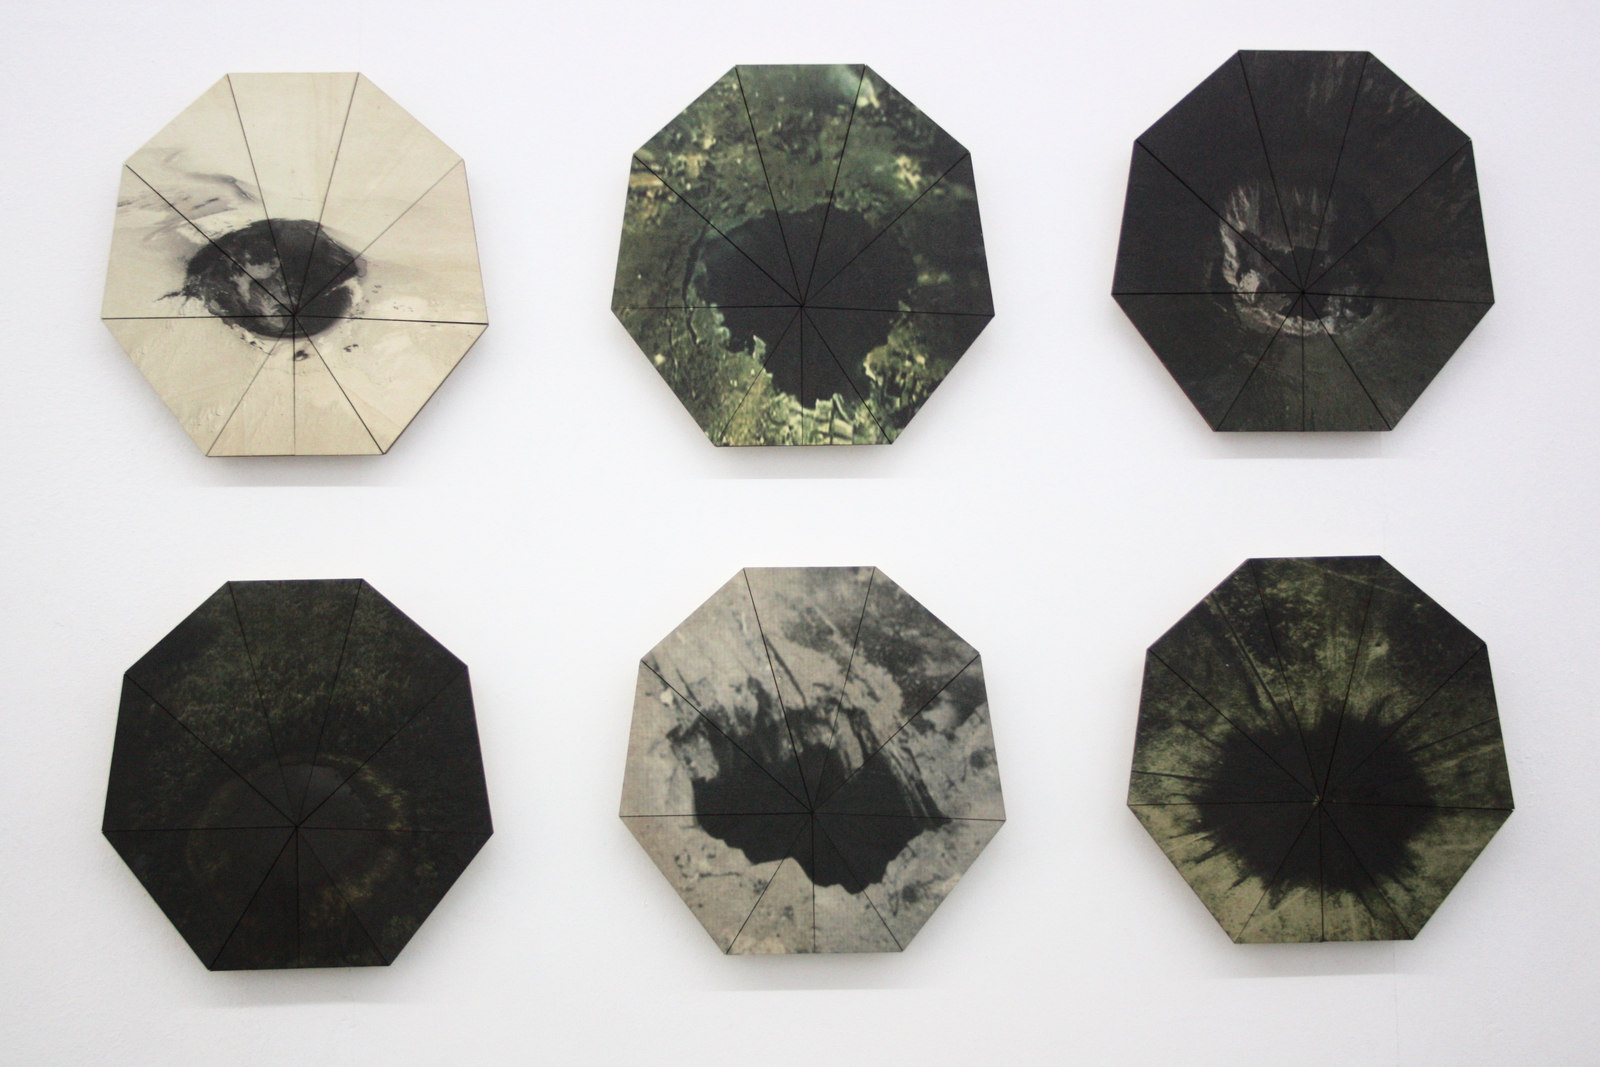 Katleen Vinck, f1.22-27, c-print on wood, 32x32X5cm each